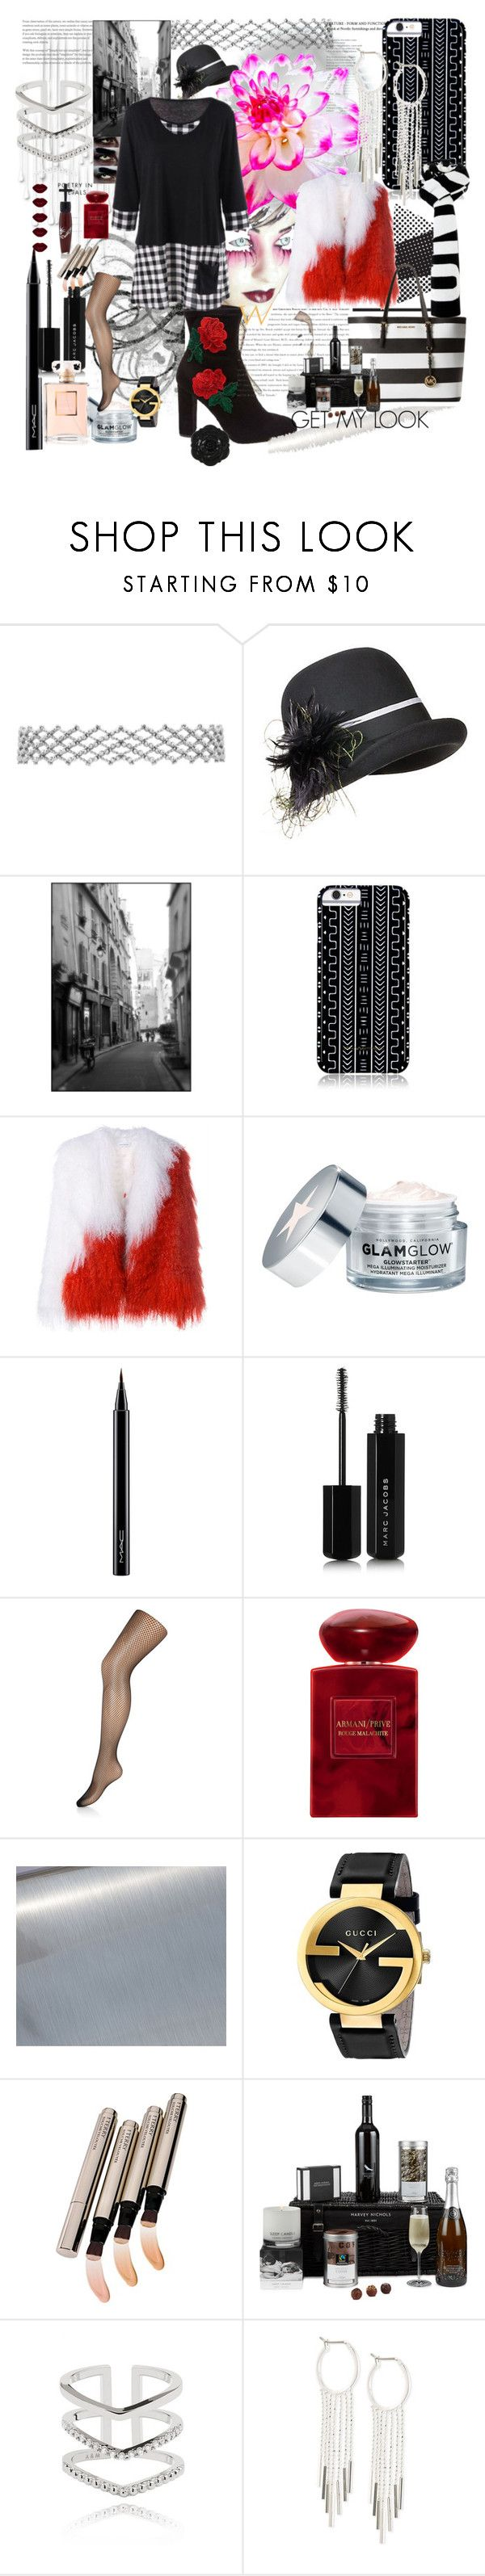 """""""BEING YOU, #flower#plussize#dress#choker #décor#boots#embroery#beauty #art#glow#jewerly#coffee#purse #coat#jacket#scarf#phonecase #hat#watch#fishnetstocking"""" by carriearmstrong269 ❤ liked on Polyvore featuring Overland Sheepskin Co., Savannah Hayes, Saks Potts, GlamGlow, MAC Cosmetics, Marc Jacobs, Accessorize, Manic Panic NYC, Giorgio Armani and Gucci"""